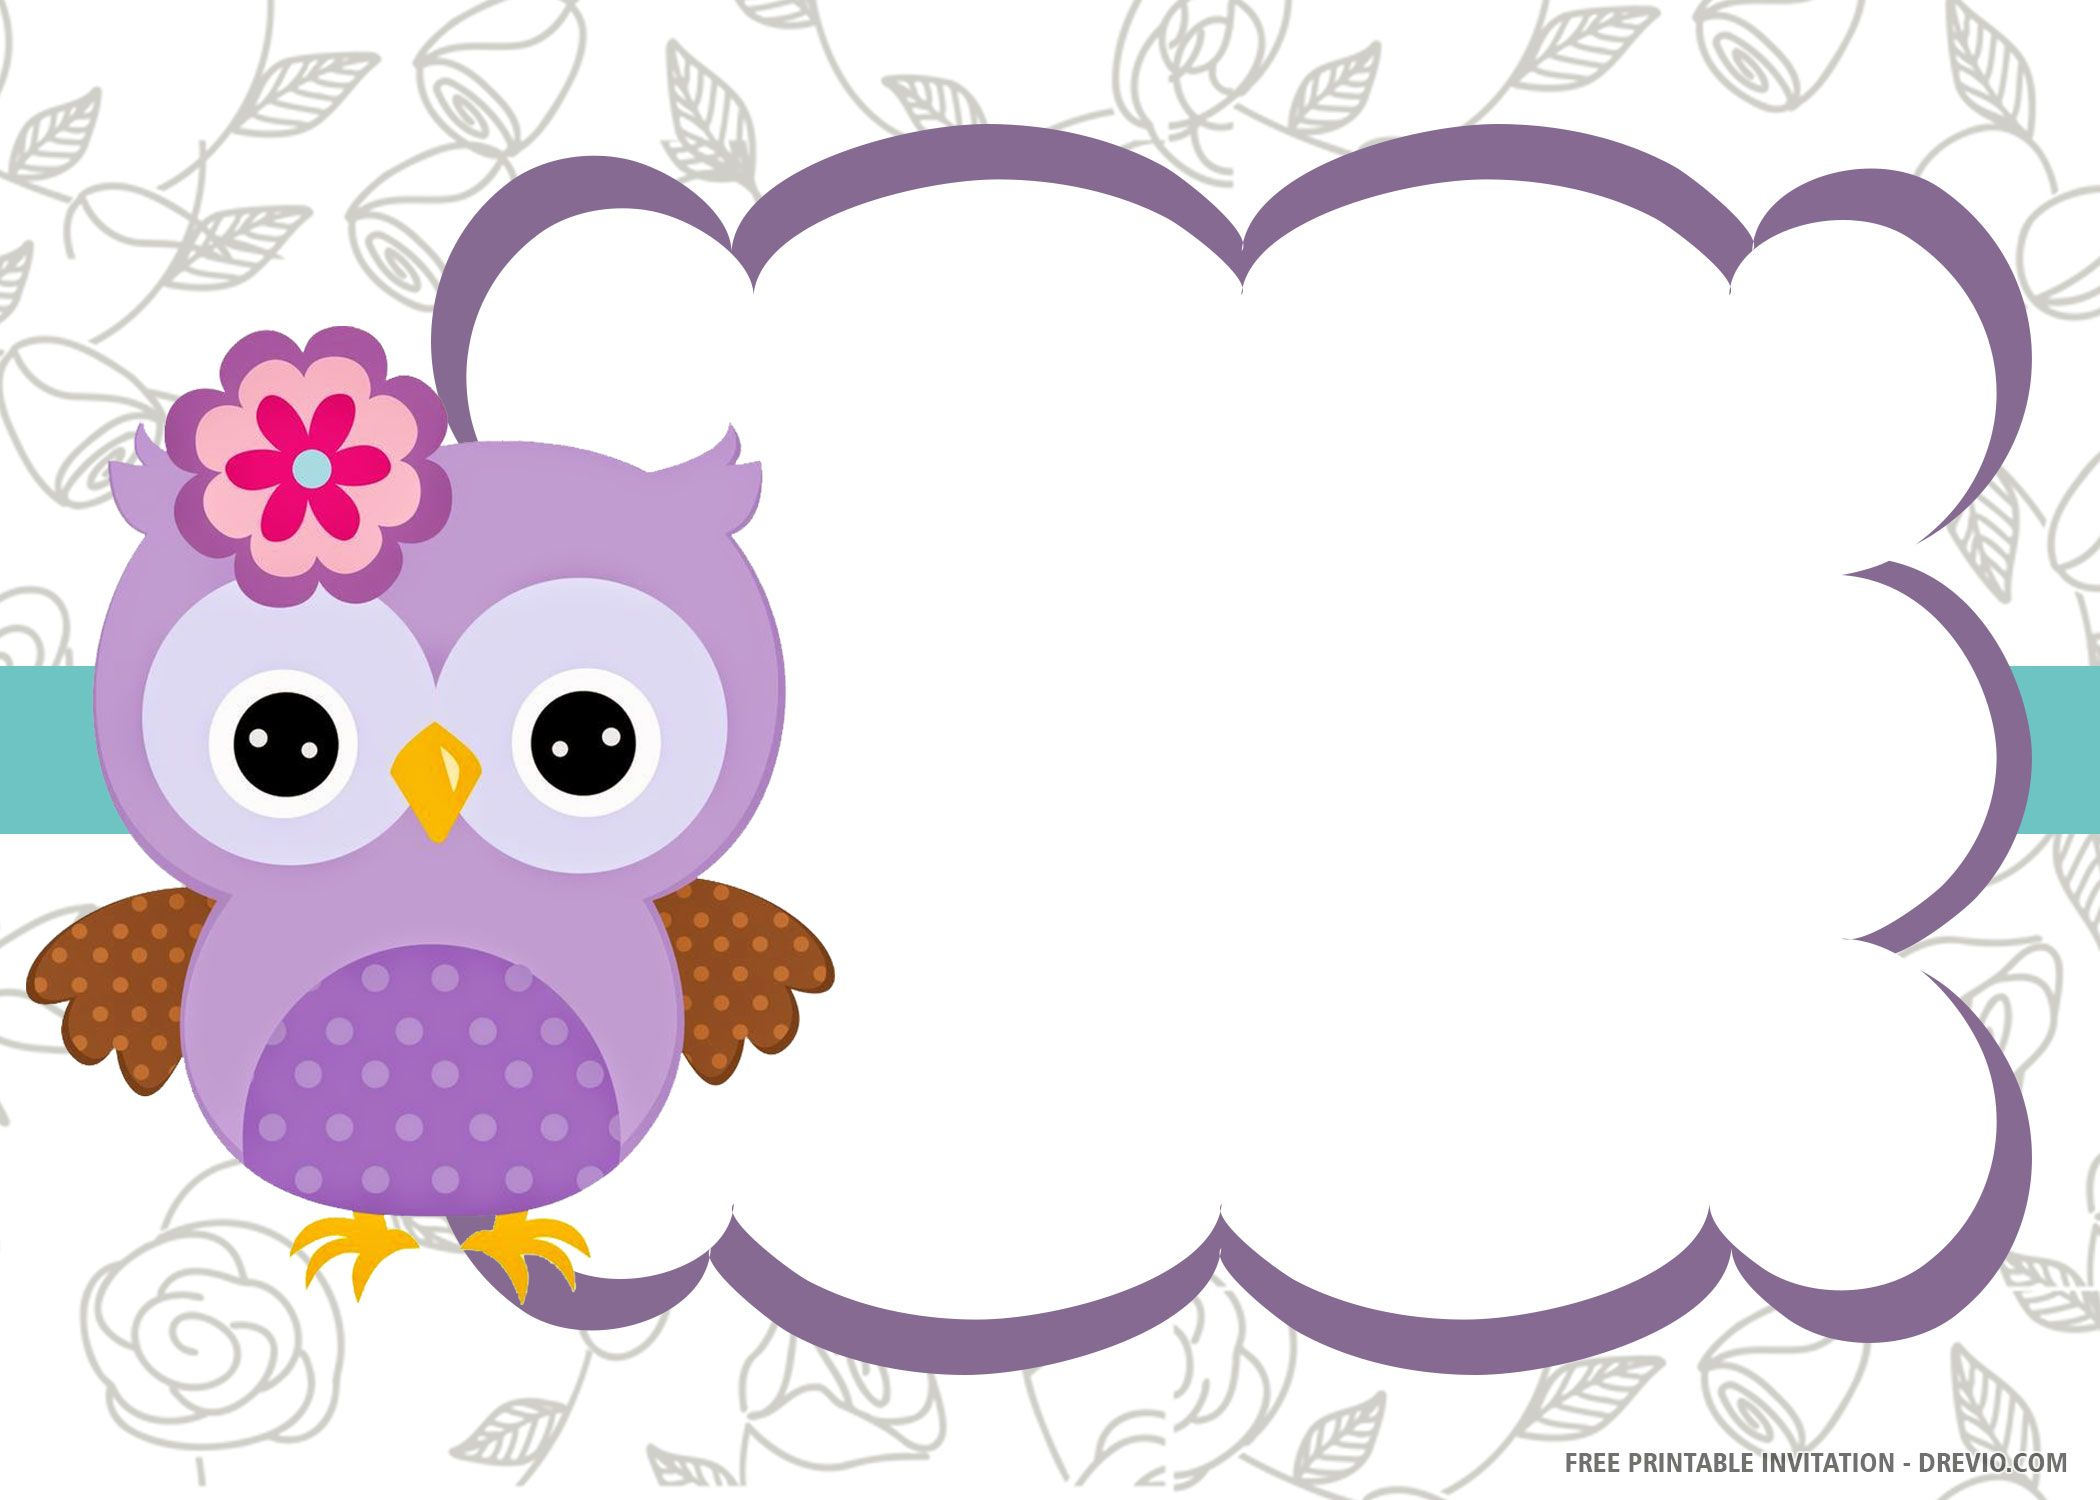 Free Printable Owl Invitation Templates Drevio In 2020 Owl Invitations Free Printable Birthday Invitations Printable Birthday Invitations